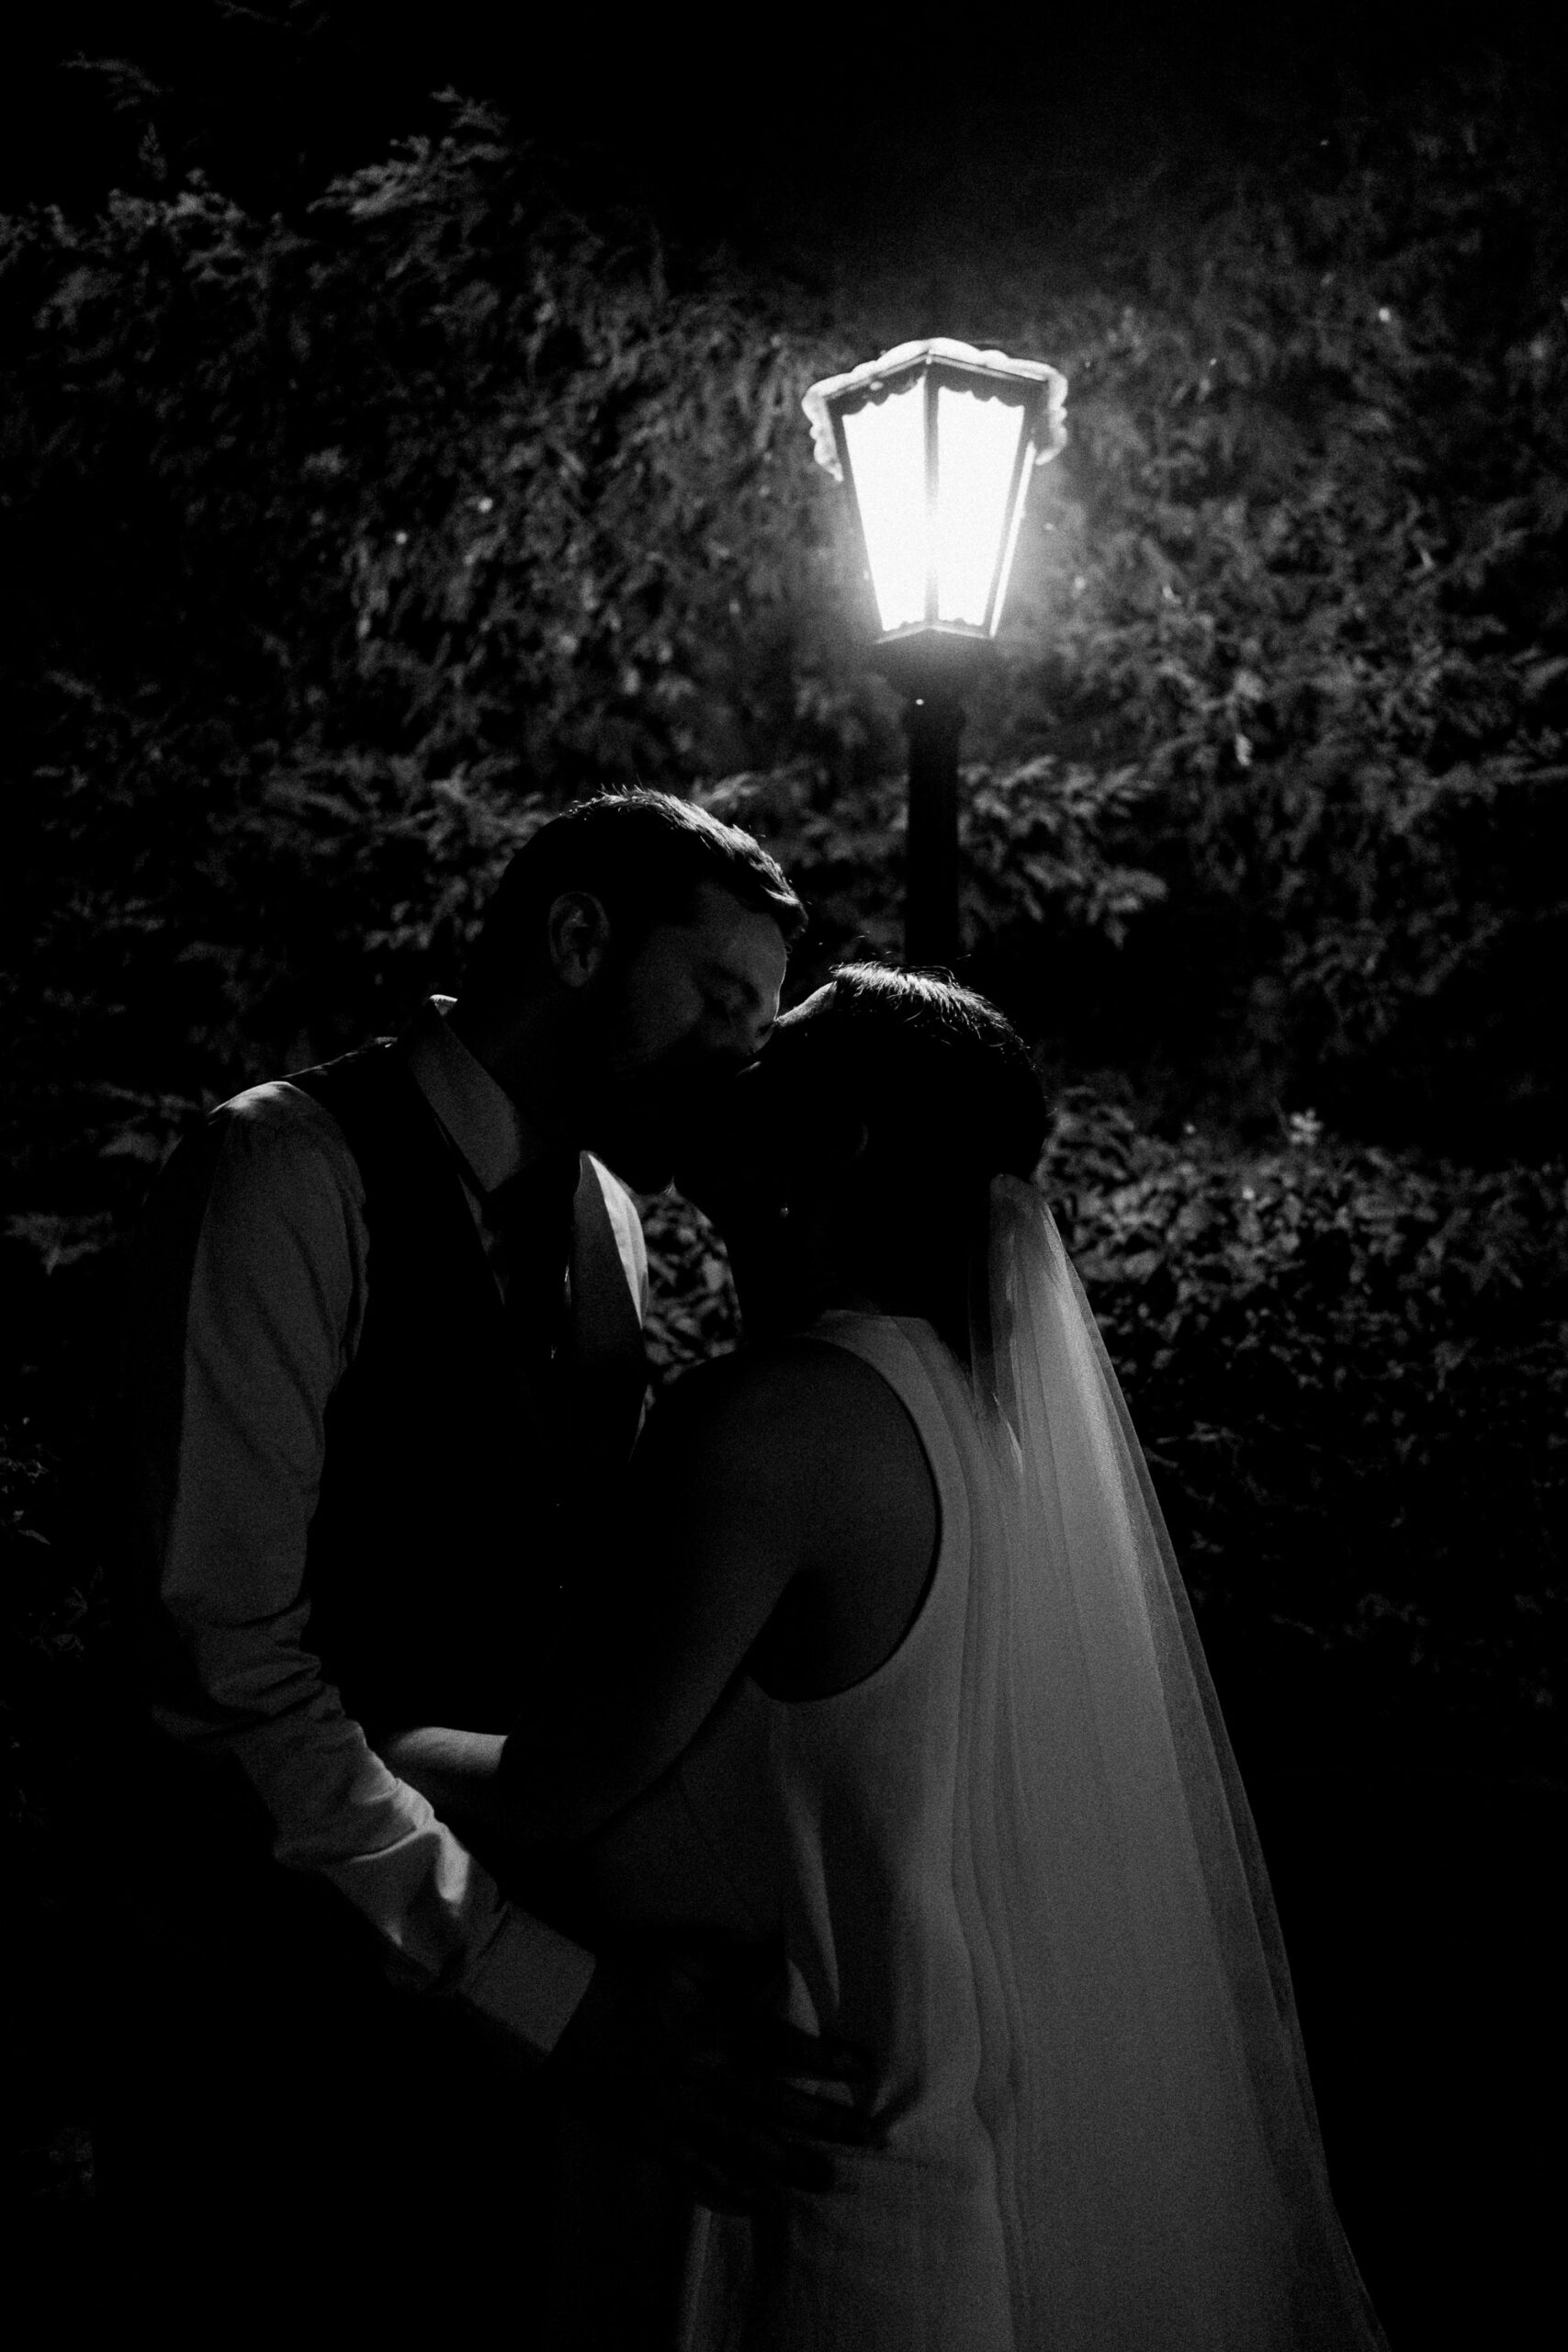 black and white protrait of bride and groom under lamplight bourne valley inn Hampshire